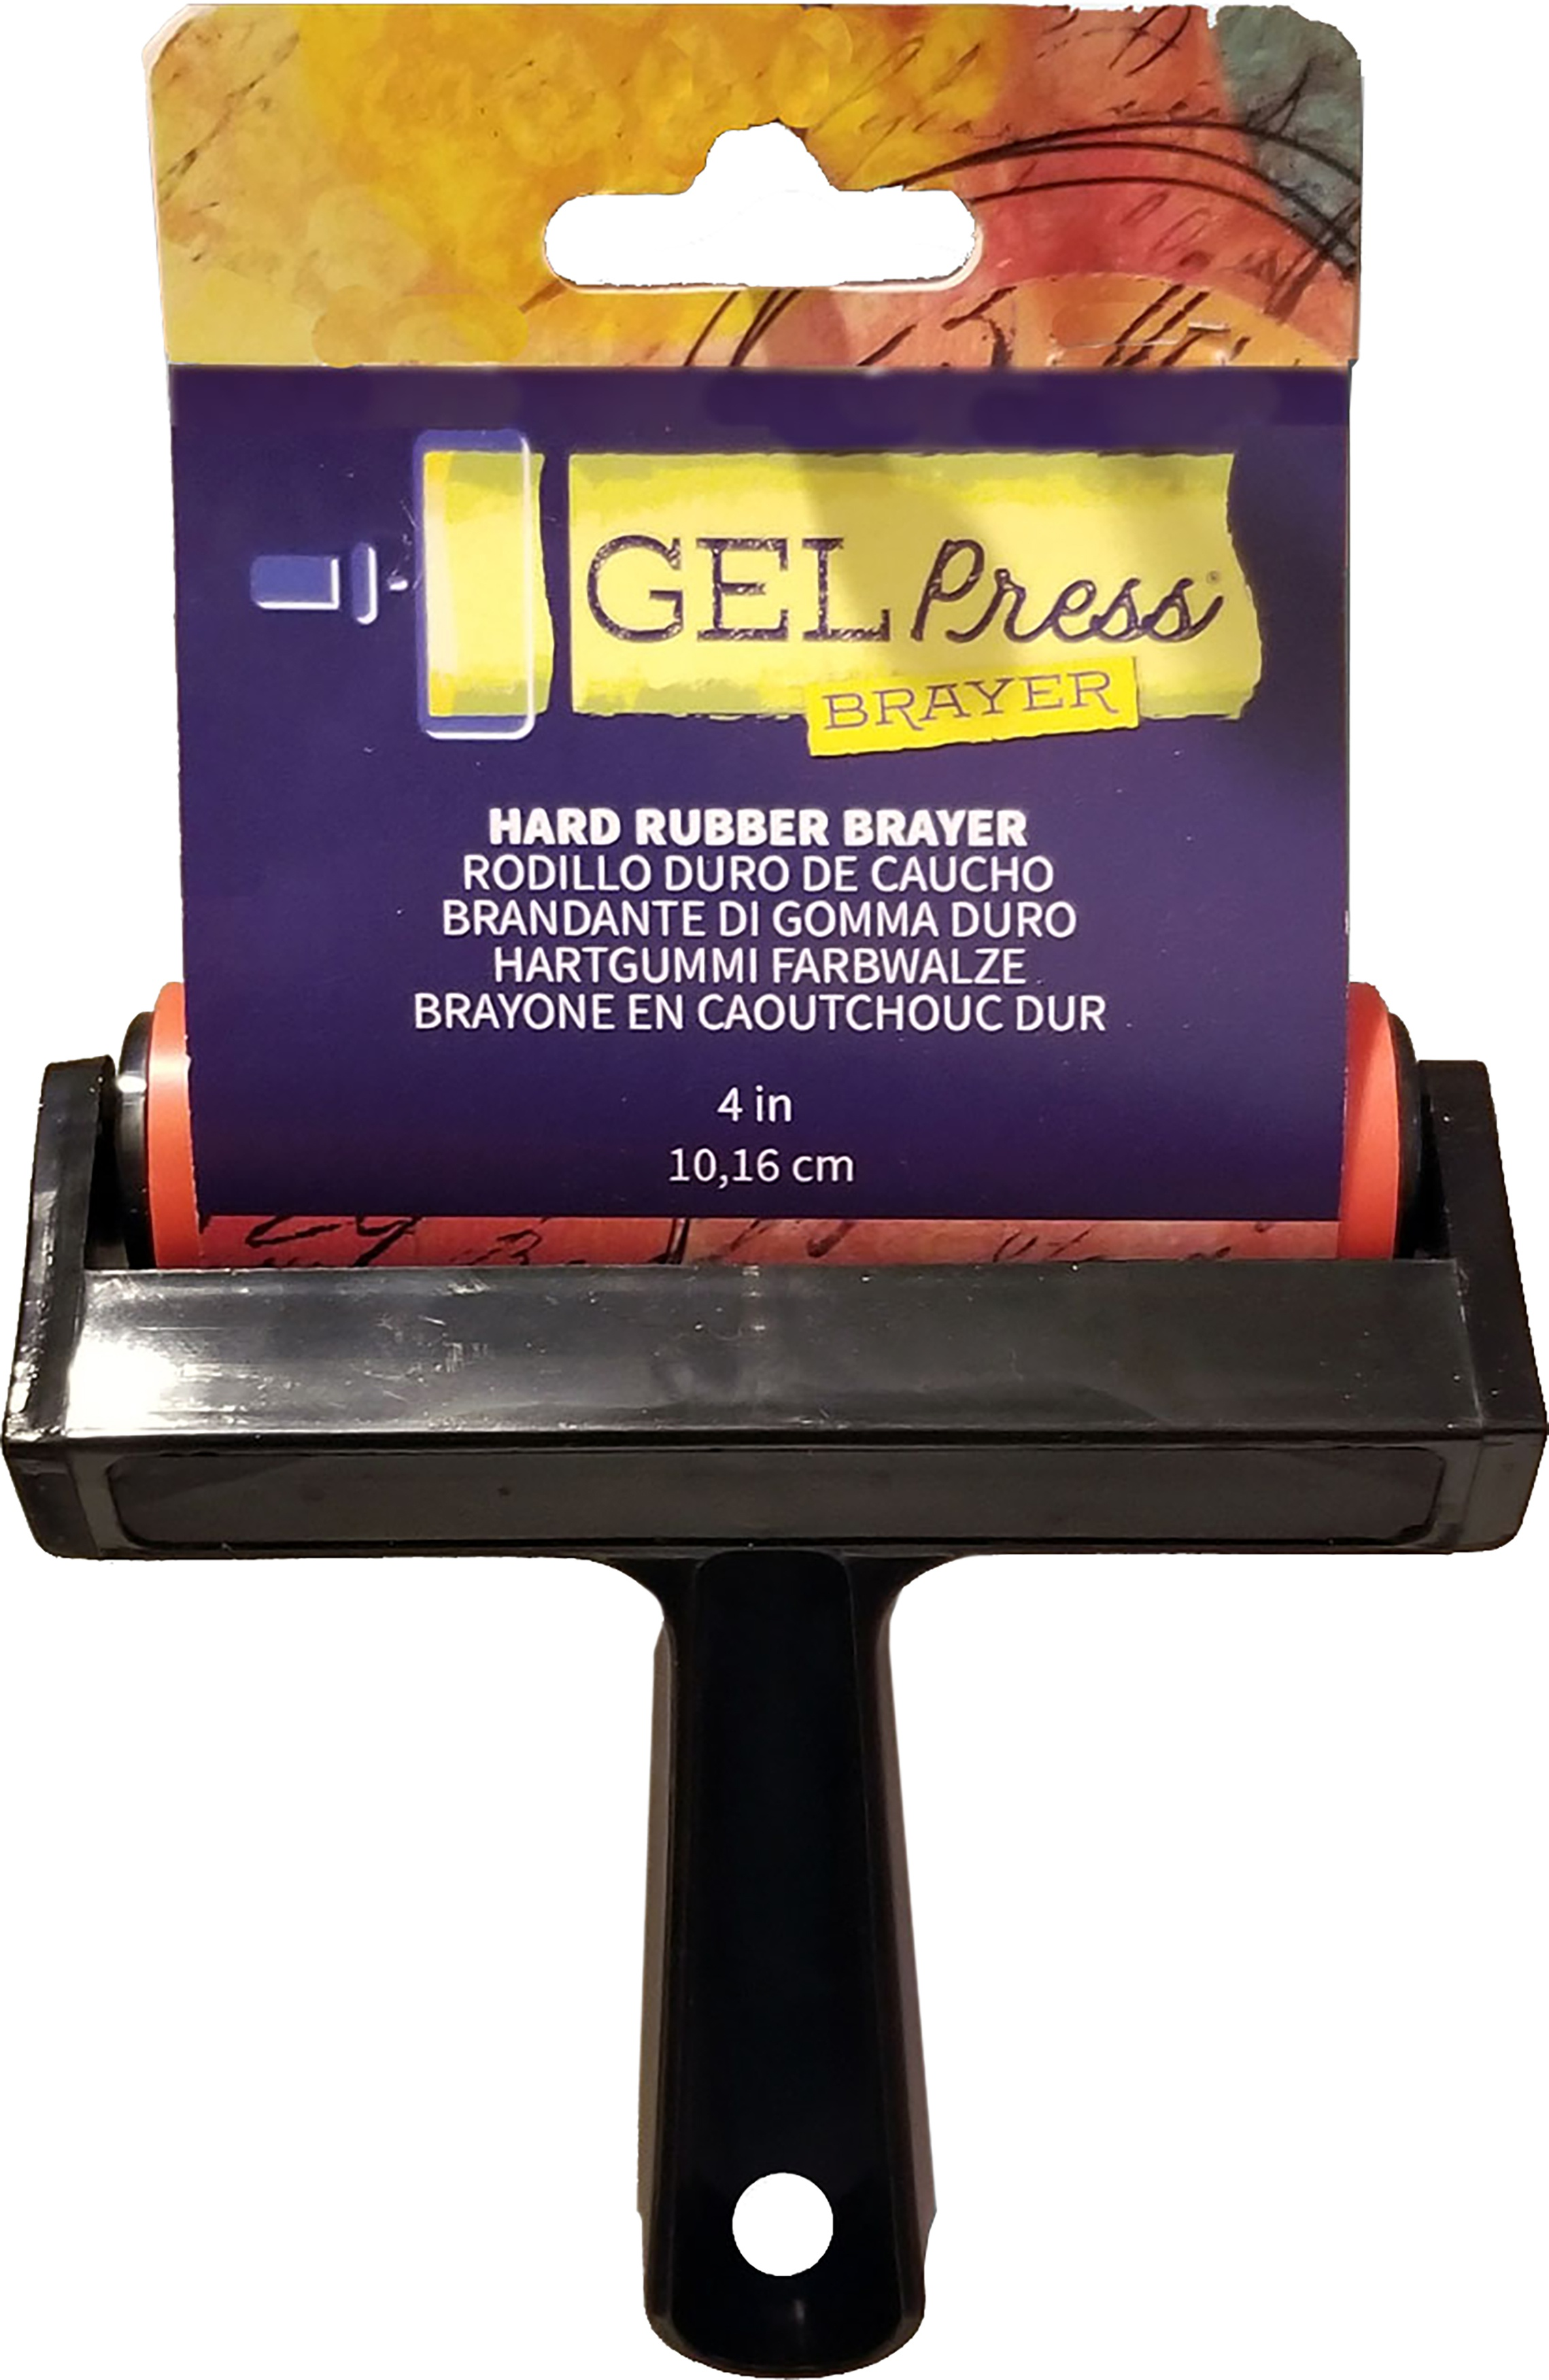 GEL PRESS BRAYER